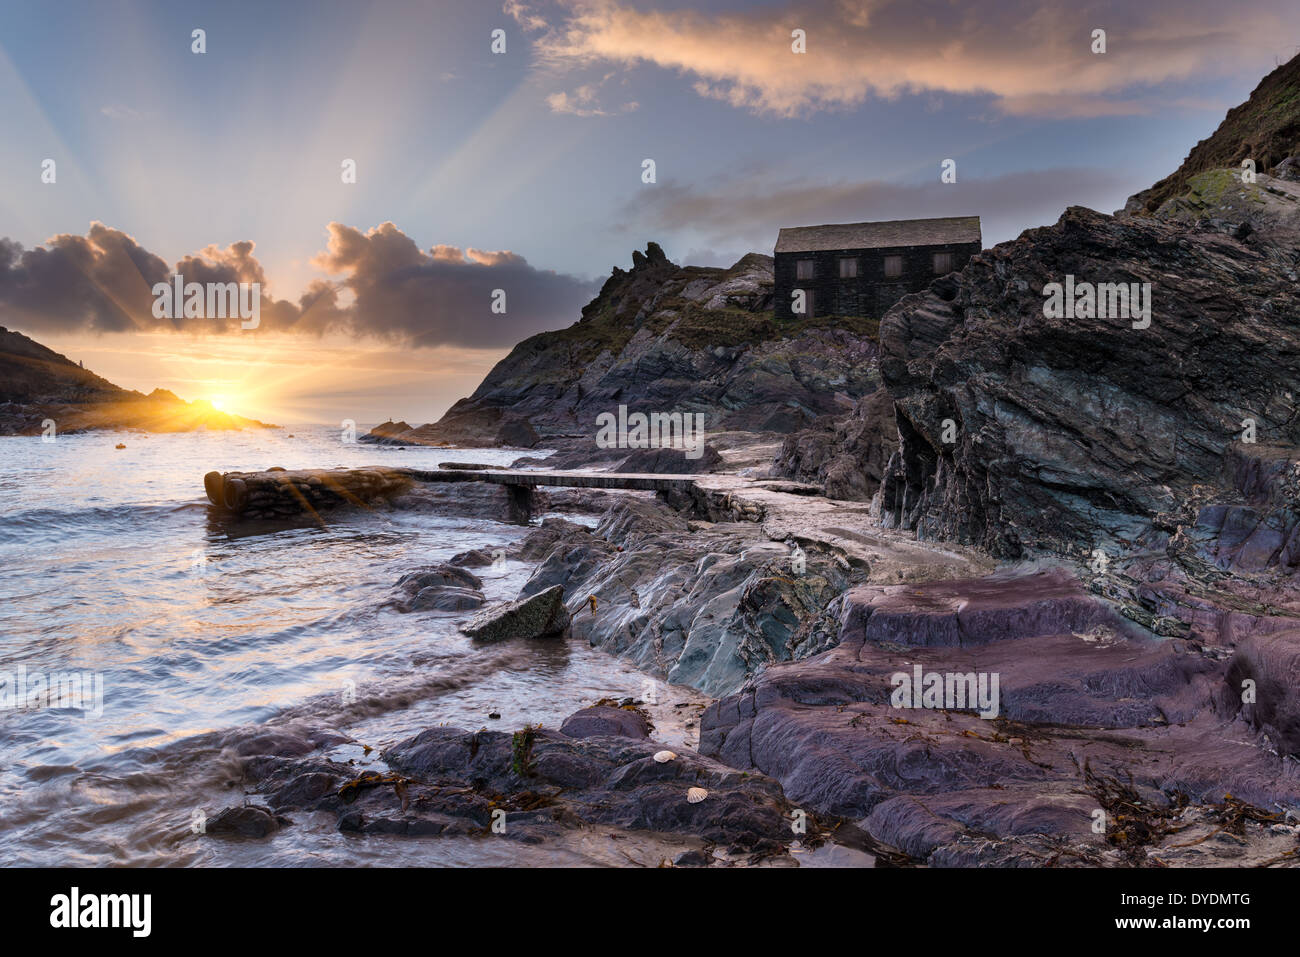 The beach at Polperro a small historic fishing village on the south coast of Cornwall - Stock Image